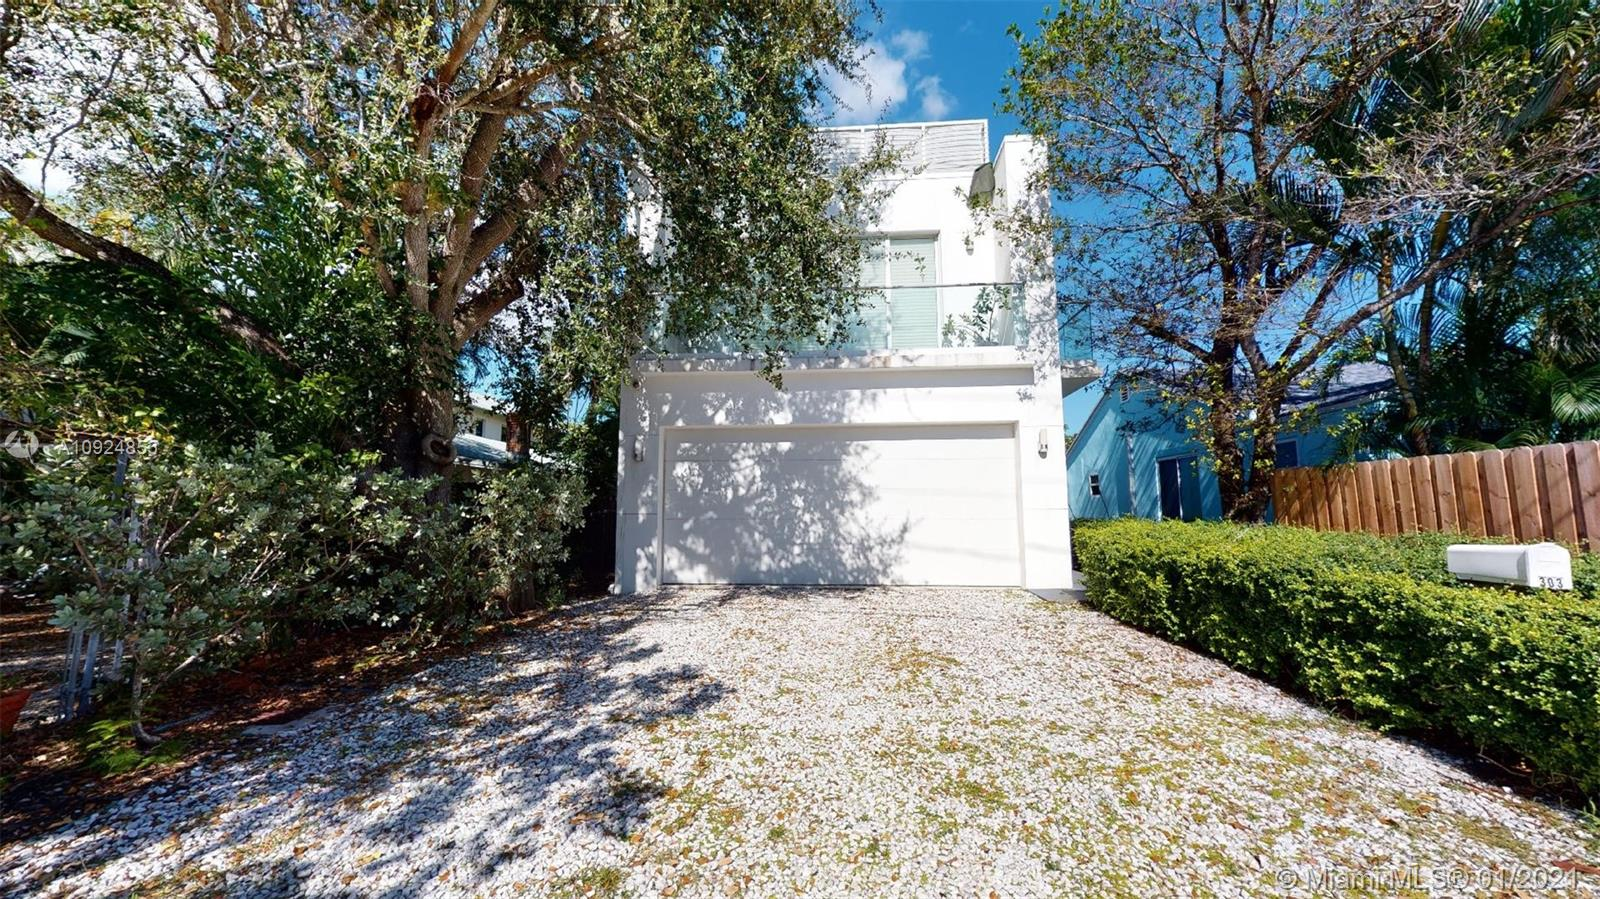 Amazing custom built home in the beautiful Tarpon River neighborhood conveniently located just south of downtown and Las Olas Blvd.  Great layout with 5 bedrooms and 3.5 baths primary bedroom suite and living area on the second floor all additional bedrooms on 1st floor.  The fabulous rooftop terrace has downtown skyline views providing lots of extra space for entertaining.  The living and kitchen areas have soaring ceilings and are flooded with natural light.  The chef's kitchen was built for entertaining boasting double wall ovens, dual dishwashers, gas cooktop, abundant Italian style cabinetry,  and two center islands.  Polished concrete floors and impact and doors windows throughout. Oversized double bay garage with large additional storage closet.